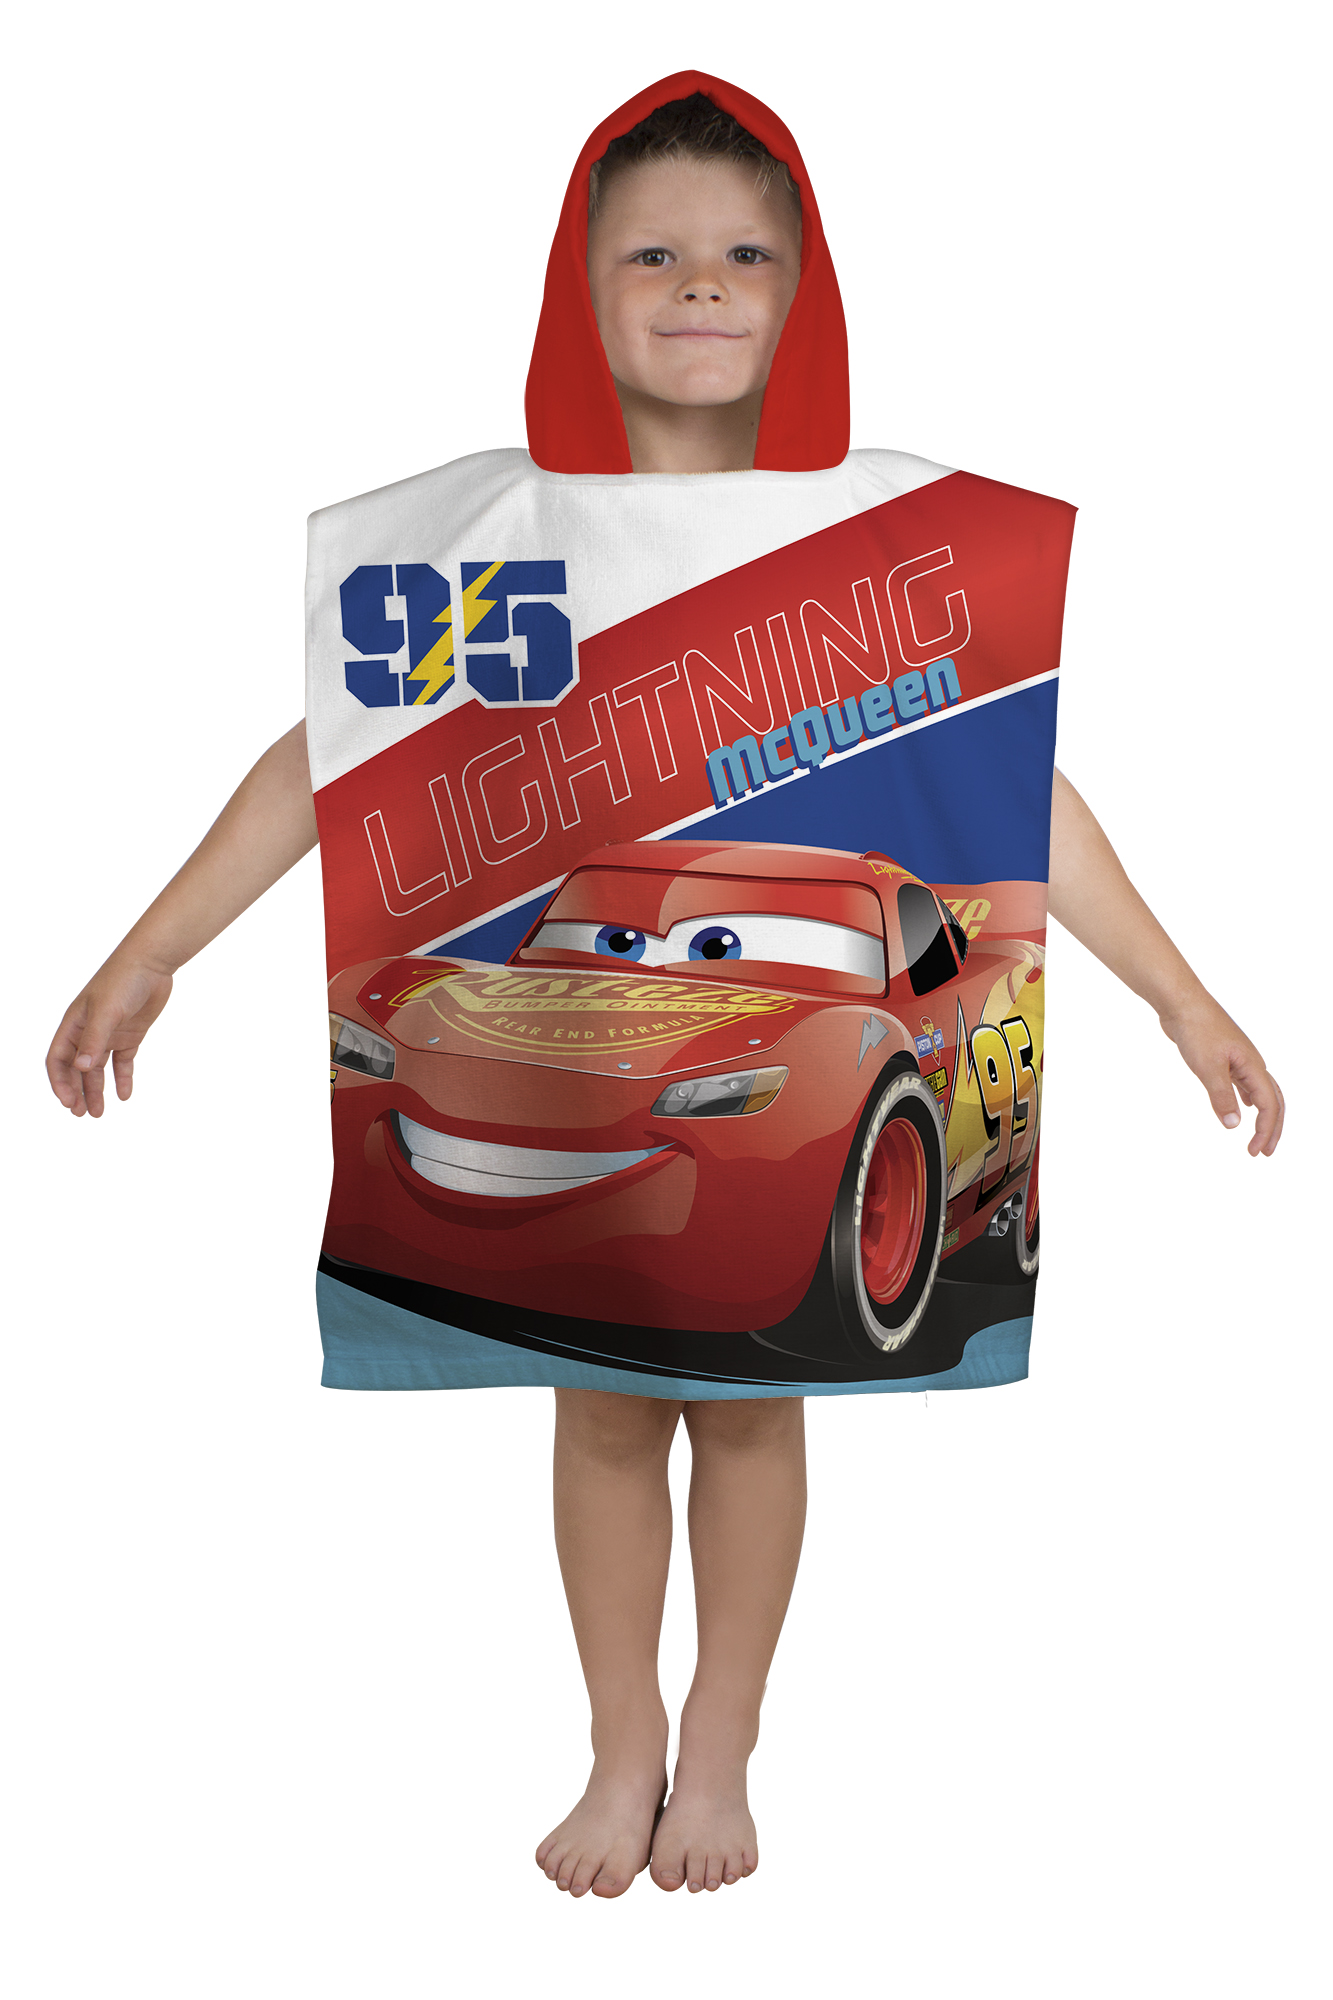 Handtuch Poncho Kind Neu Disney Cars 3 39lightning 39 Superweich Kapuzen Poncho